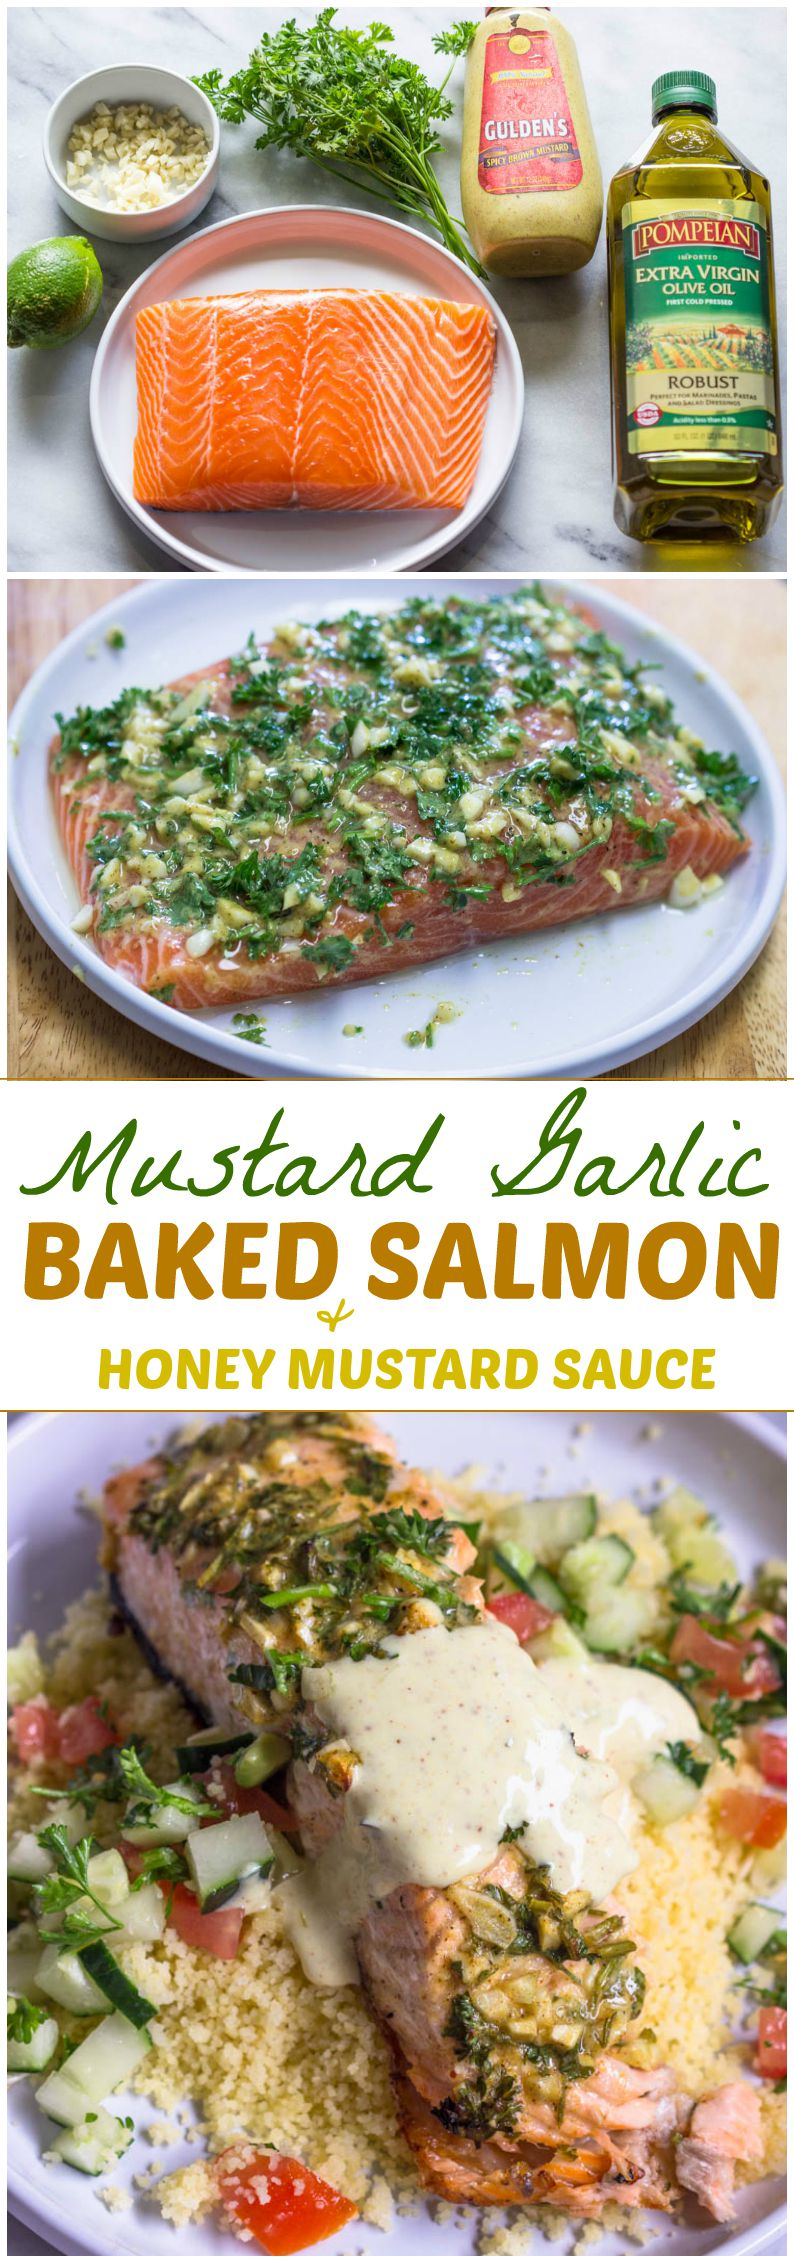 Mustard Garlic Baked Salmon with Honey Mustard Sauce (Easy, Delicious, and Healthy)